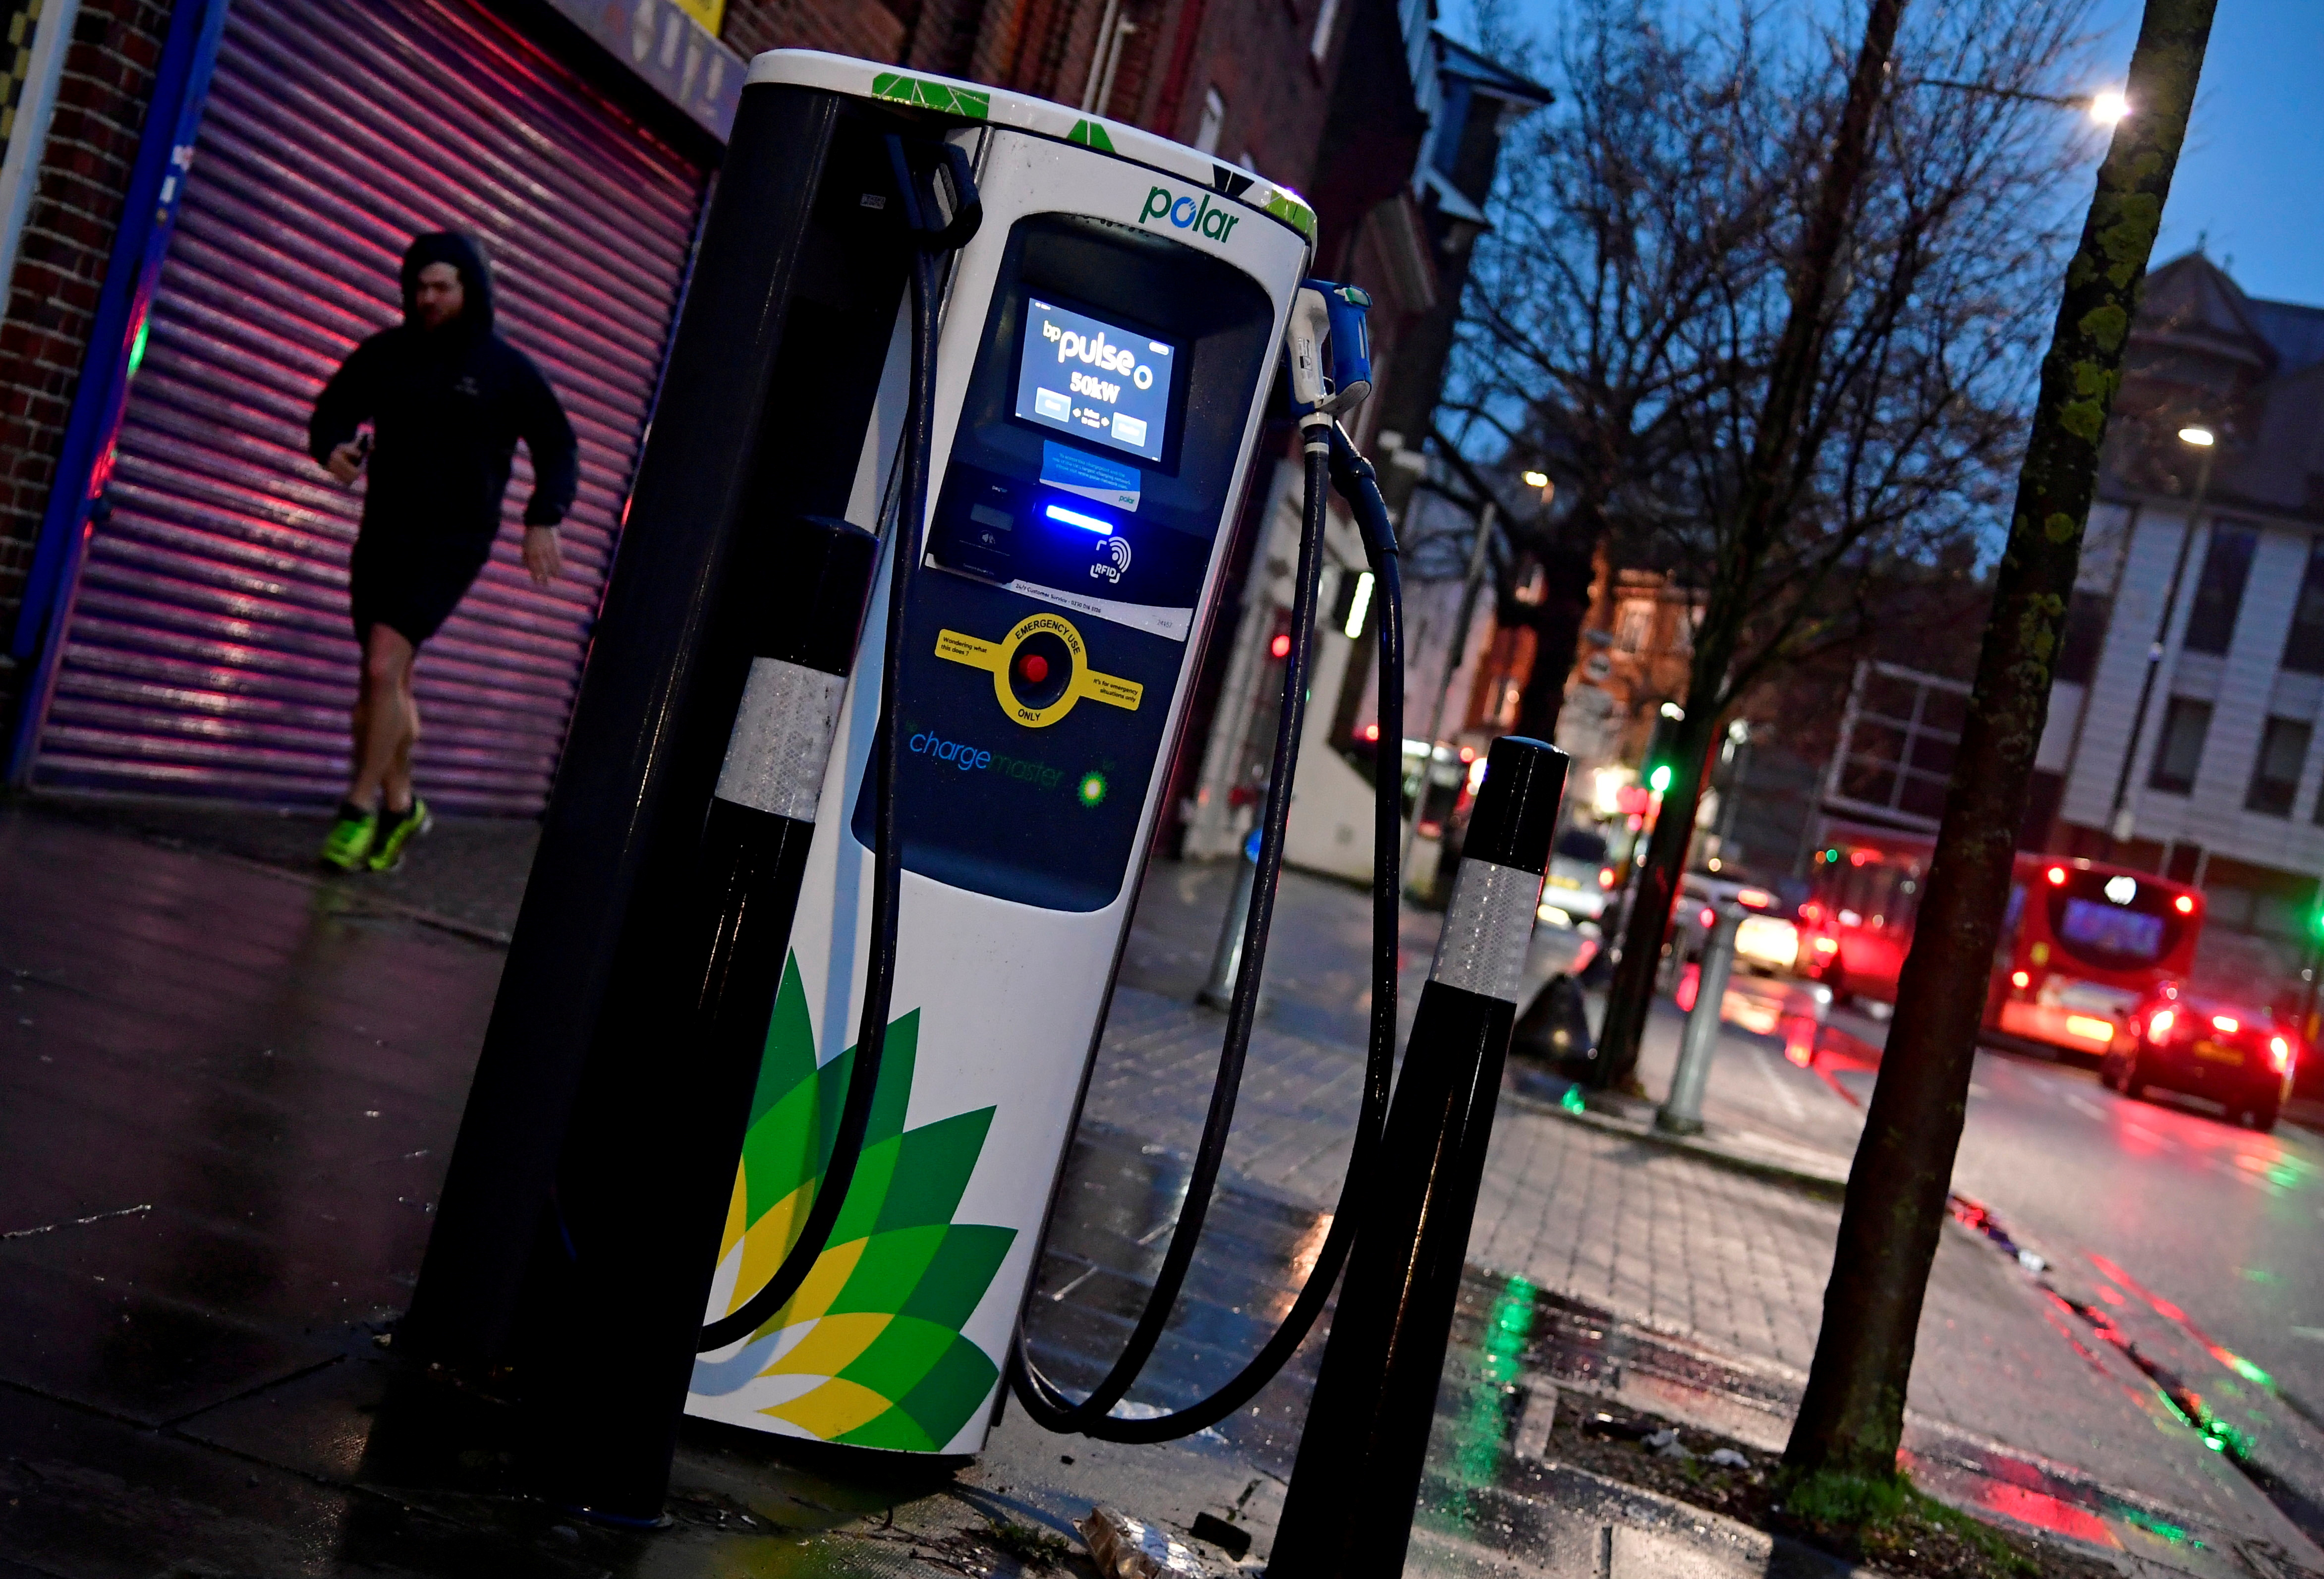 A man runs past a BP (British Petroleum) EV (Electric Vehicle) charge point in London, Britain, January 30, 2021. REUTERS/Toby Melville